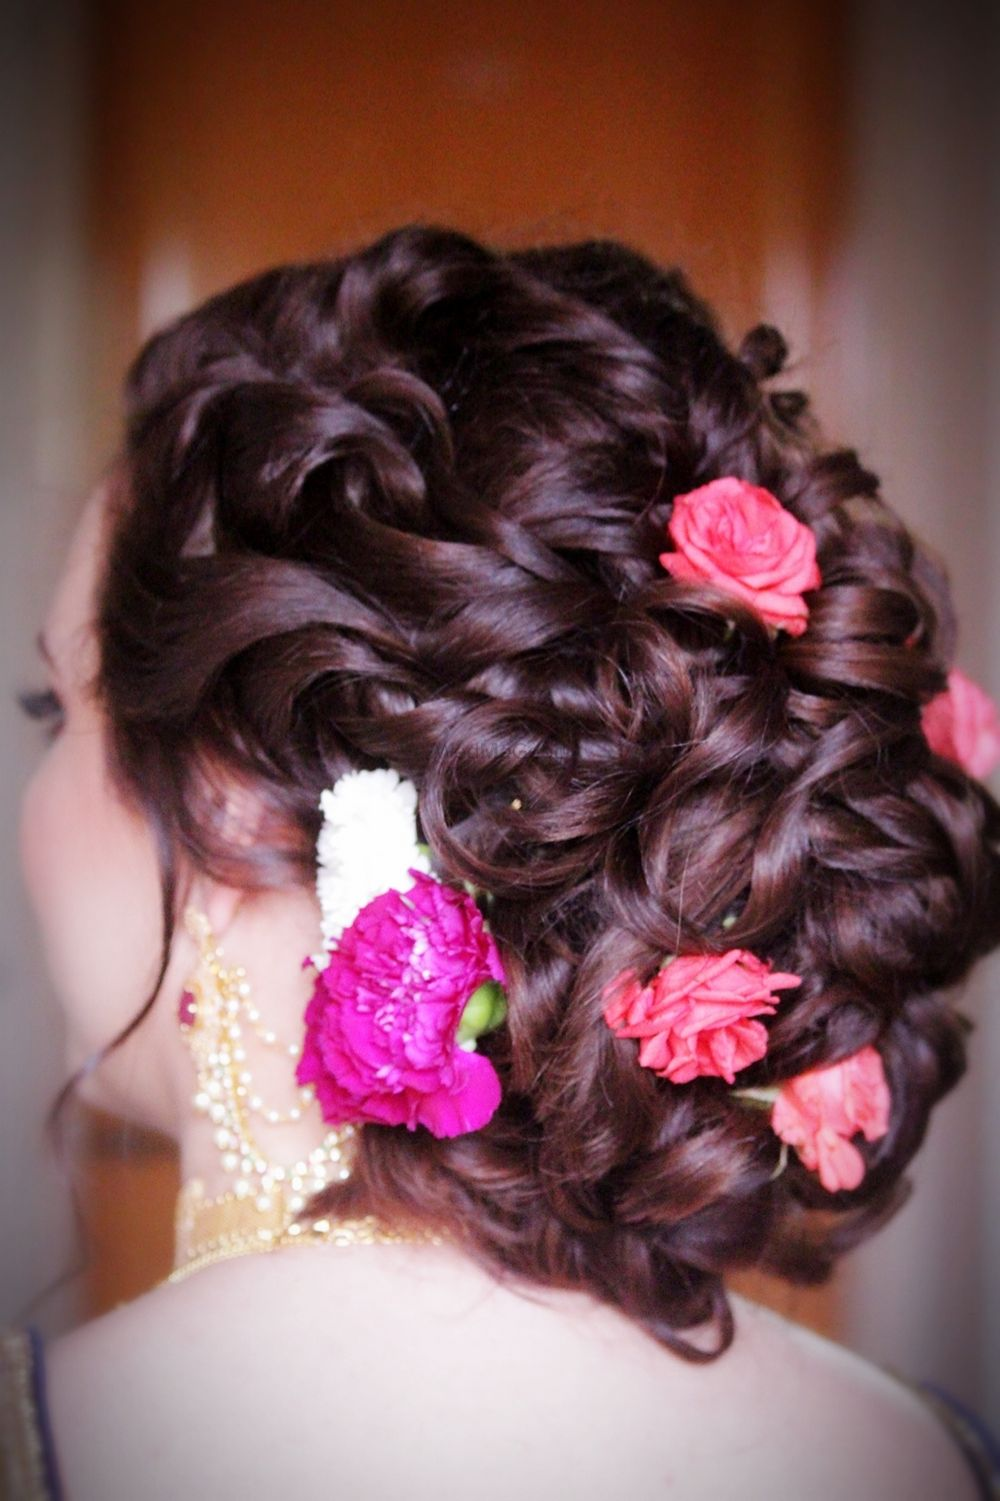 Photo of Bun with flowers for bride or mom